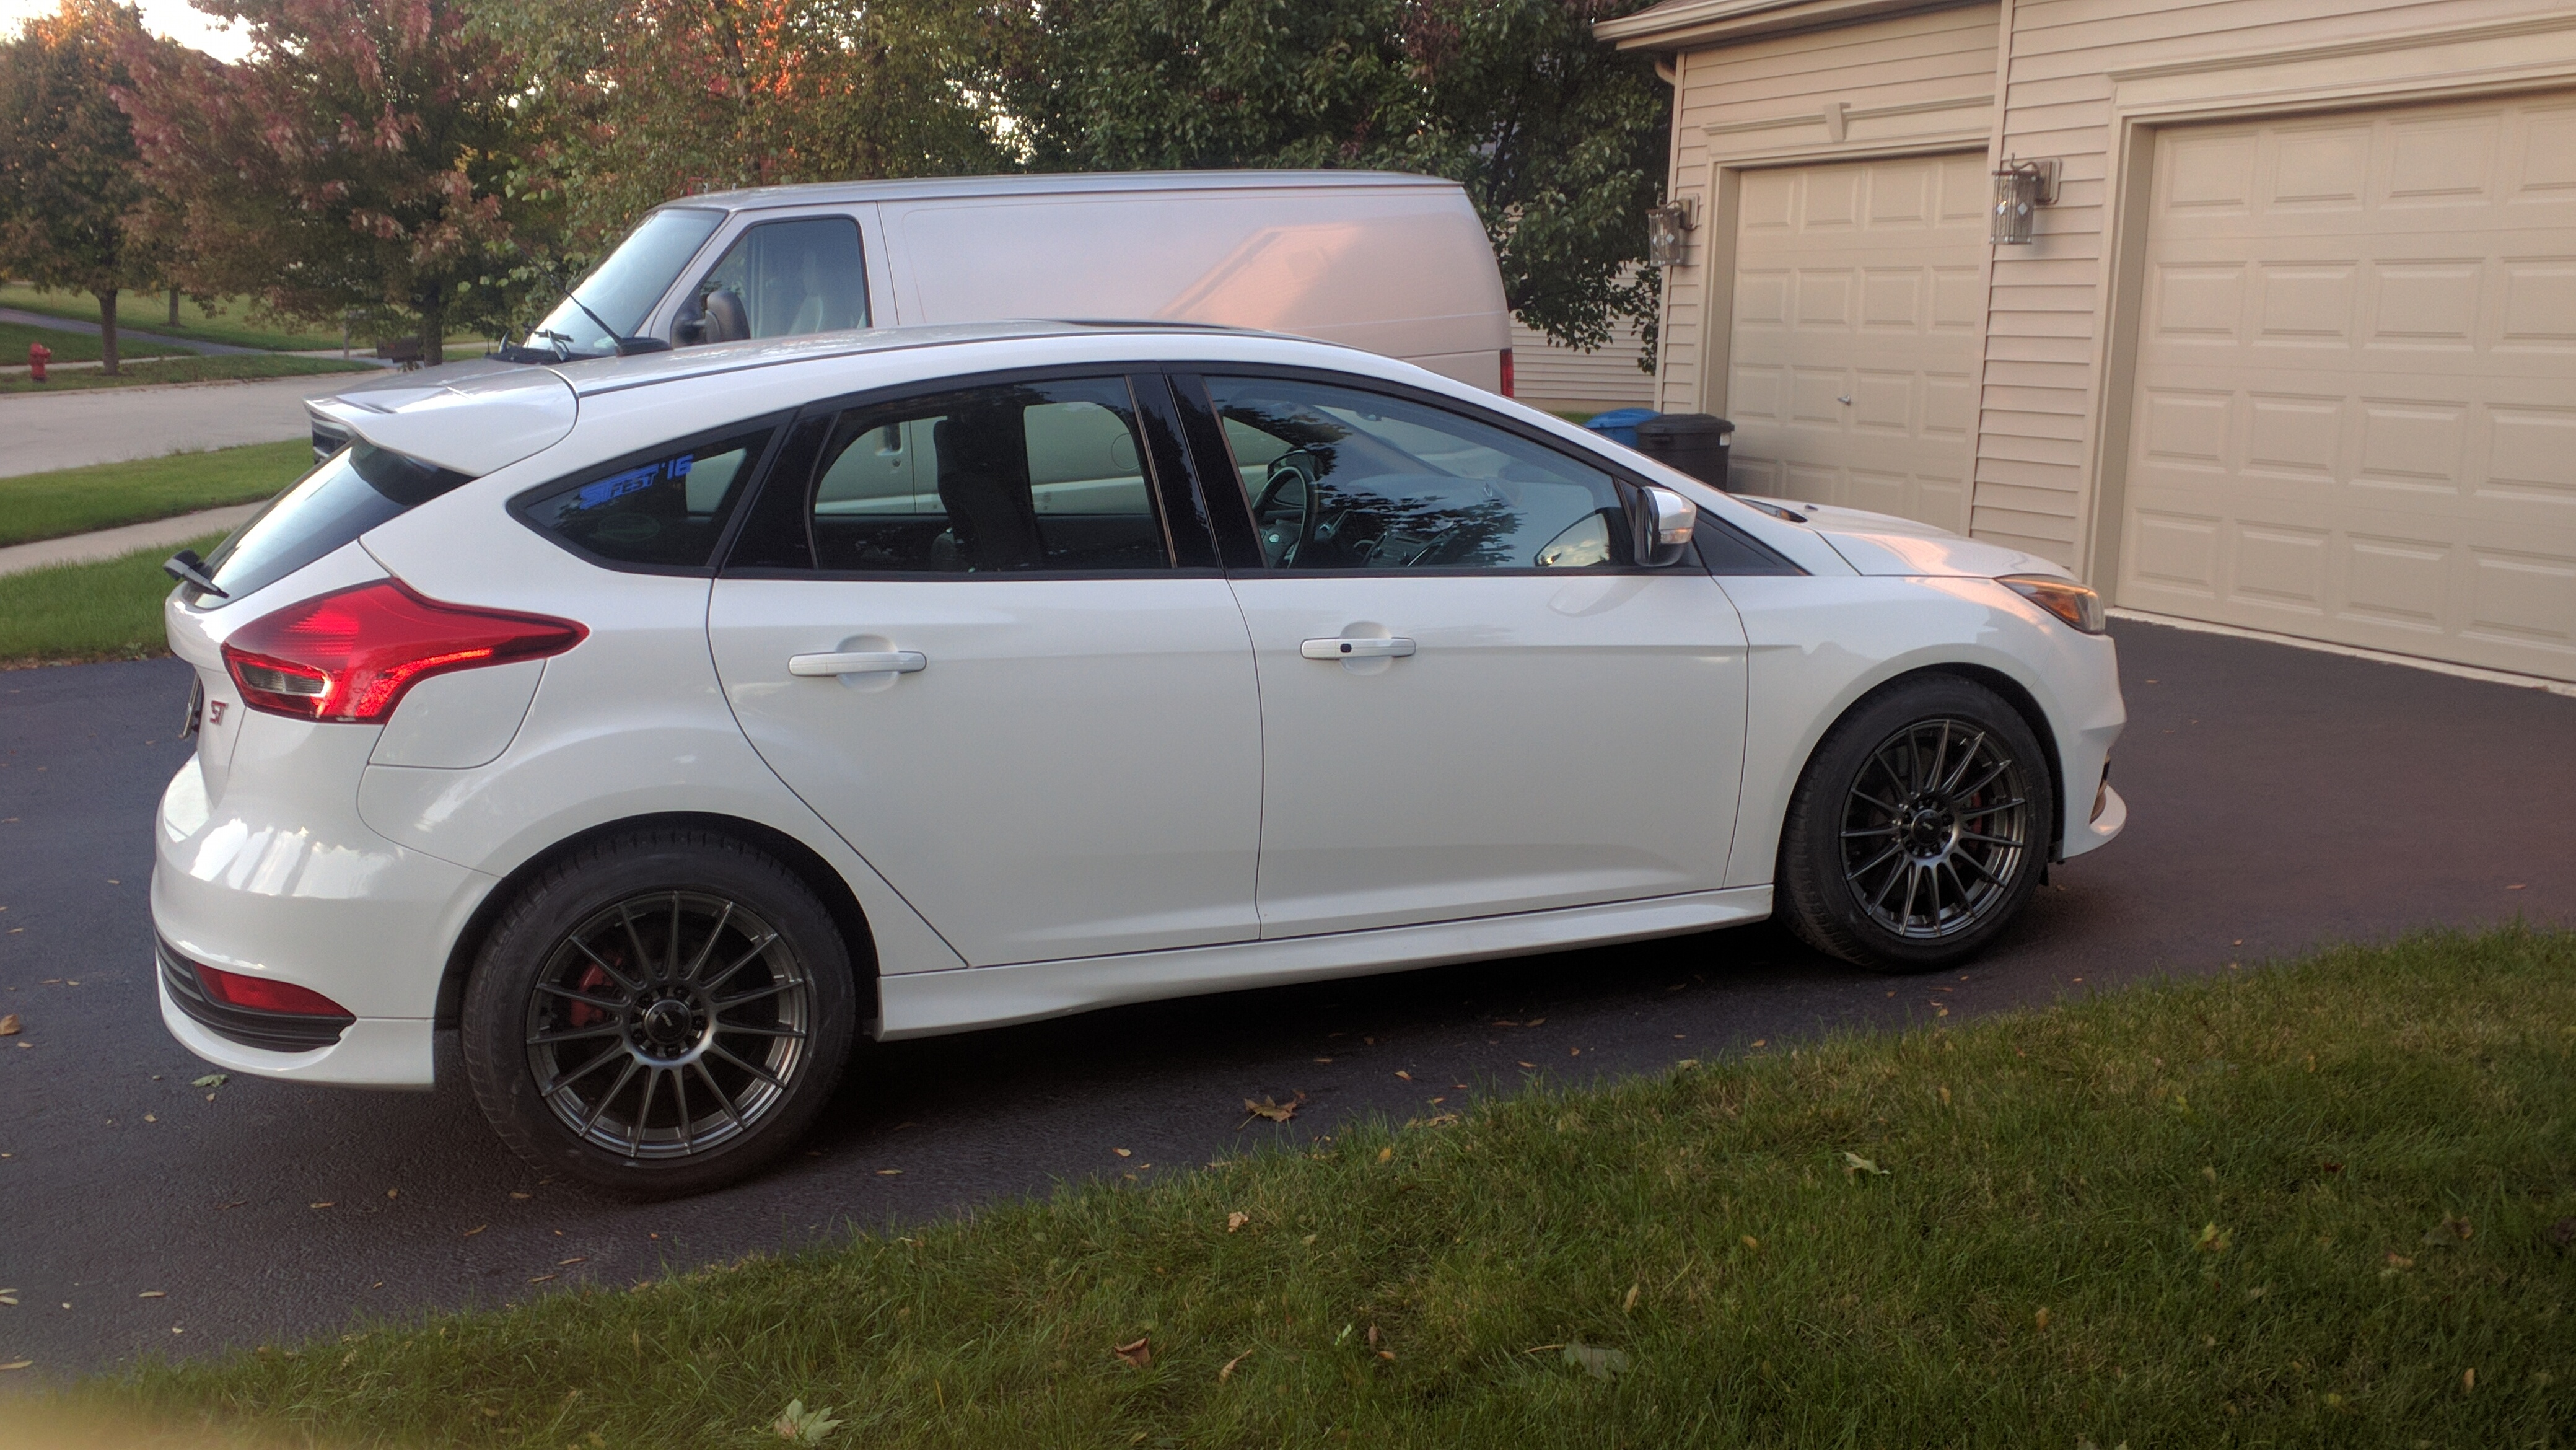 Focus St Winter Setup >> The all in one Winter/Snow tire thread - All questions about winter wheels and tires - Page 103